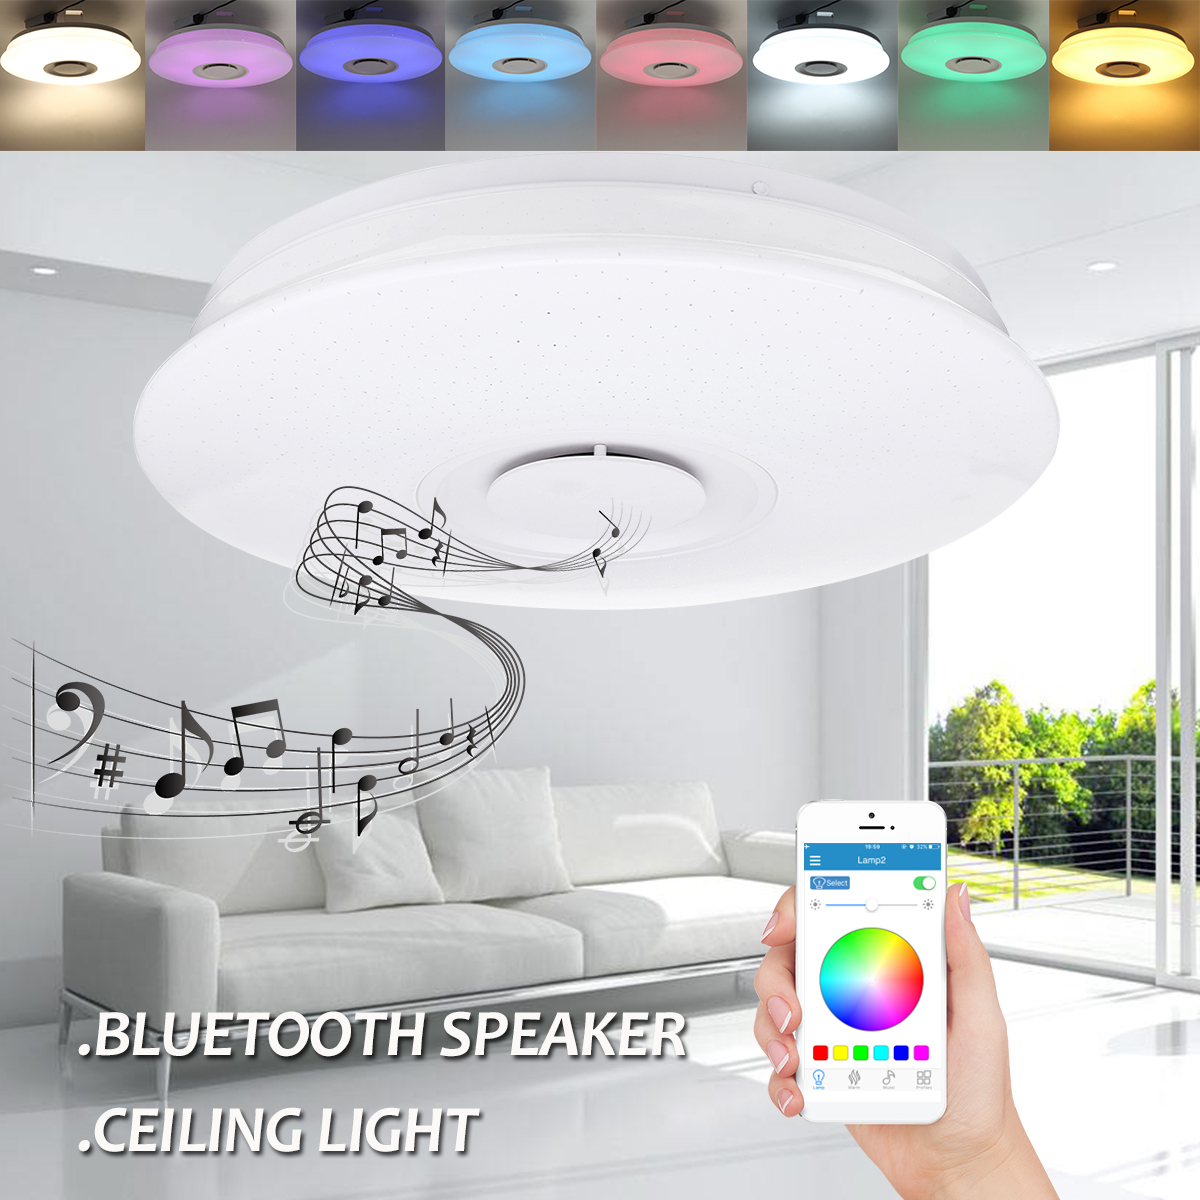 RGB LED Ceiling Light Bluetooth Speaker Music 36W Led Ceiling Lamp Smart APP Remote Control For Kids Bedroom Living Room Decor led ceiling light multi color and dimmable with bluetooth app and sound speaker for living room bedroom room